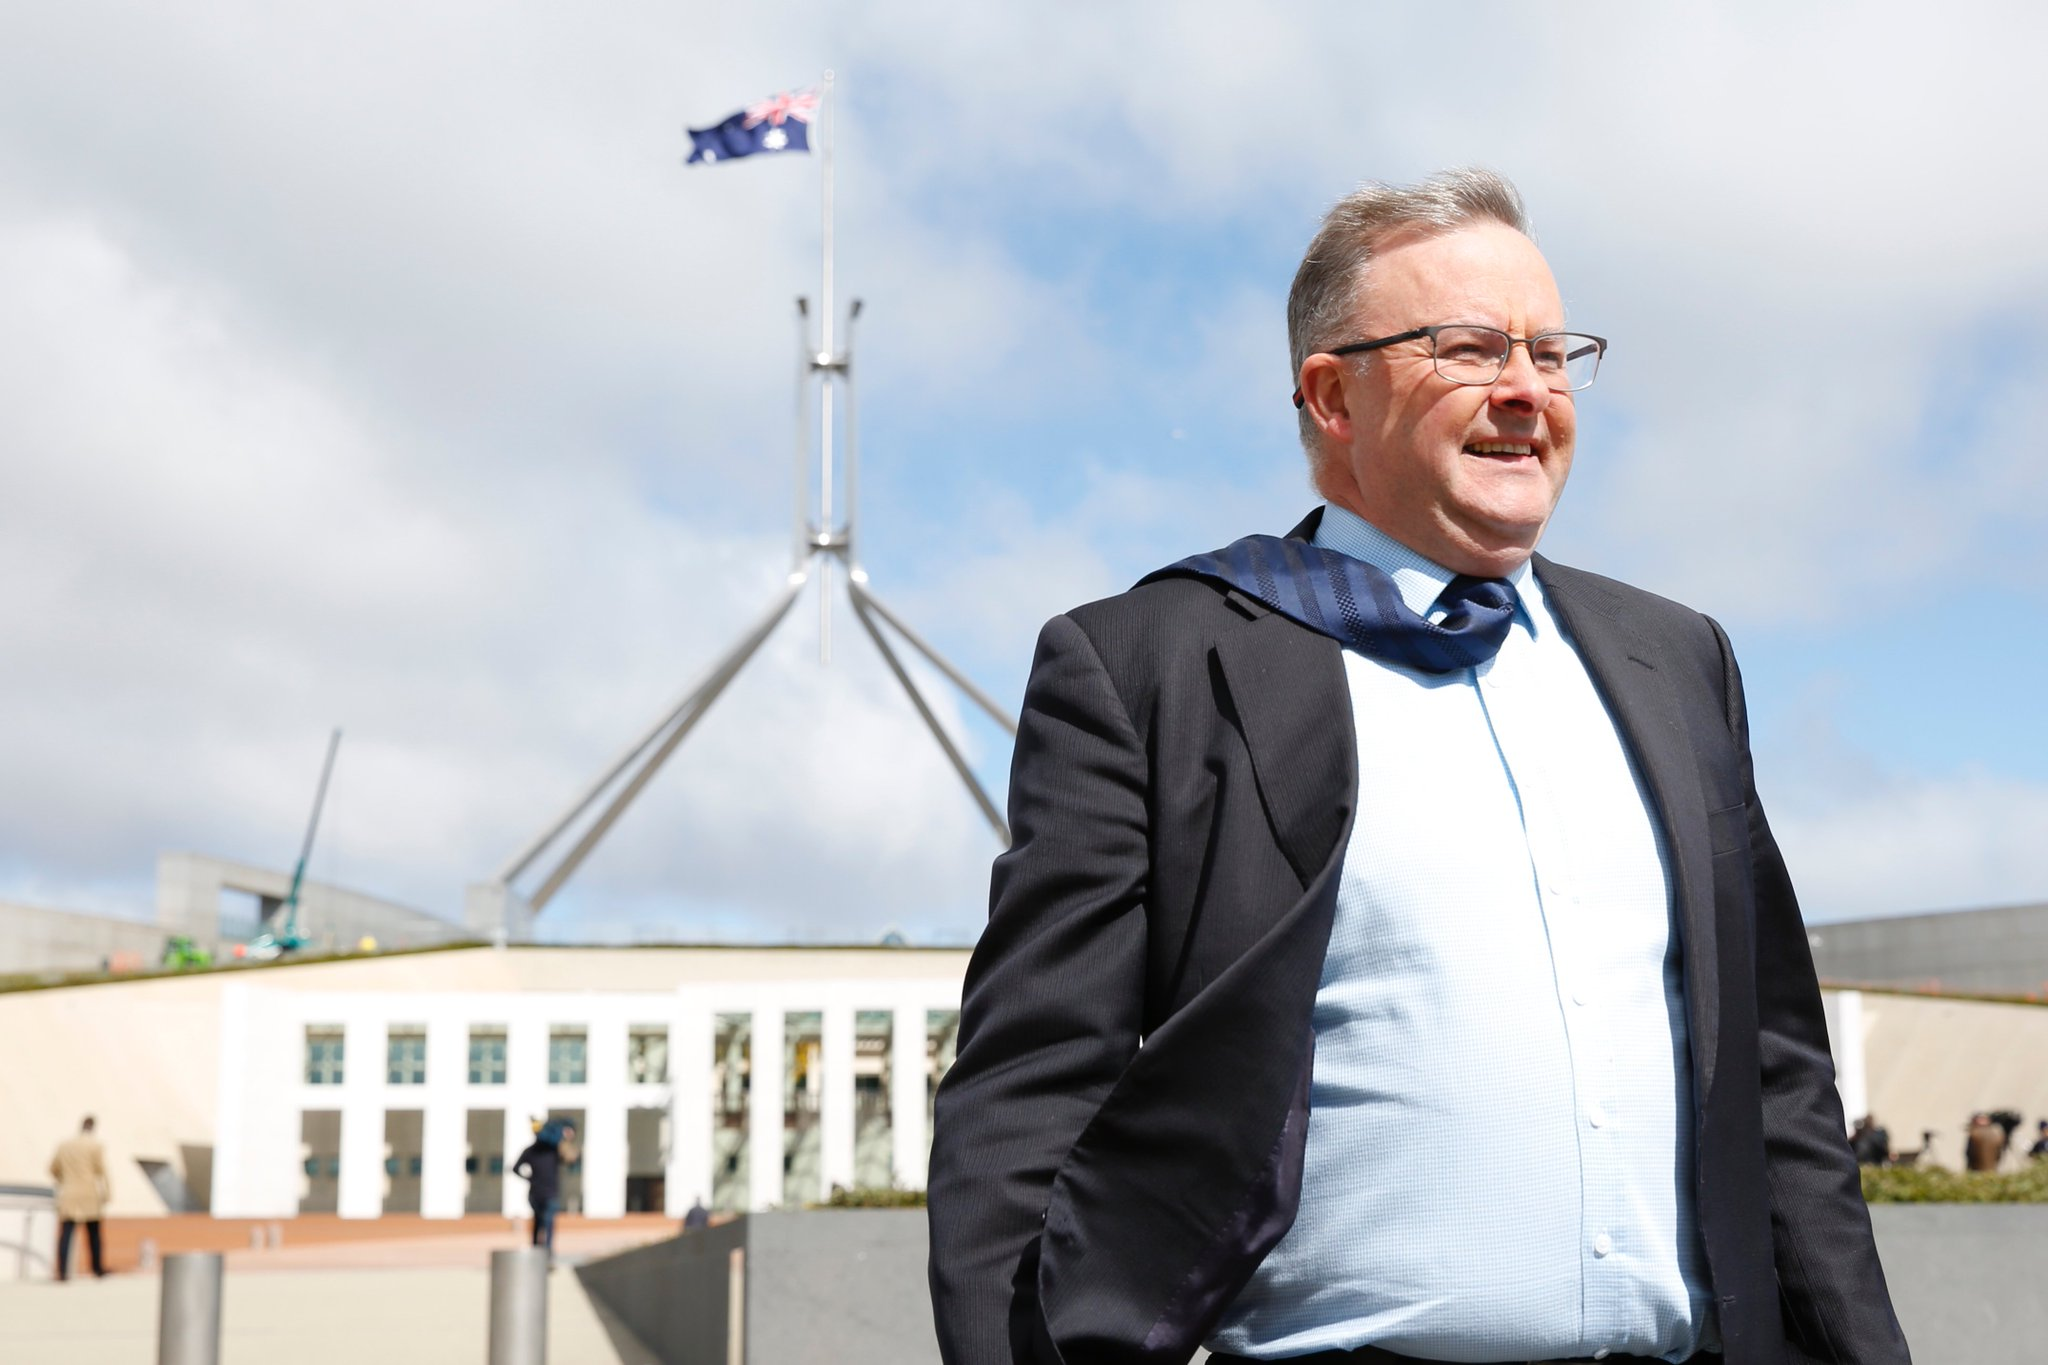 """#BREAKING Anthony Albanese officially announces he'll be a candidate for Labor leader. He says the election is a """"devastating result"""" for Labor and the party needs to examine the outcome #ausvotes https://t.co/OZrPyPU6bn"""